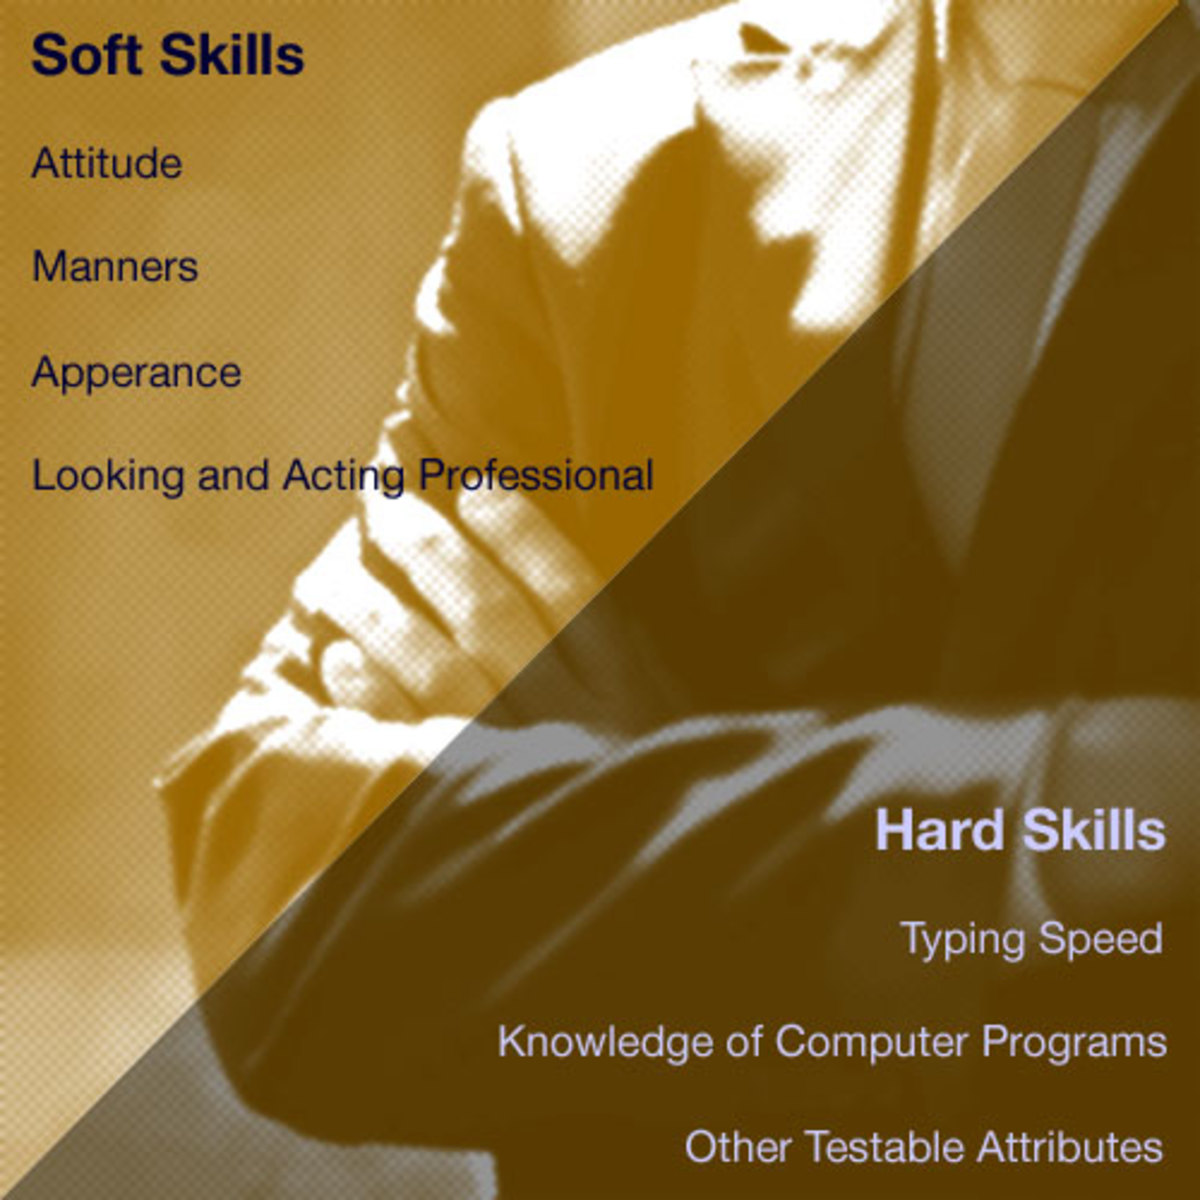 highlight your soft skills and hard skills--employer's love that!